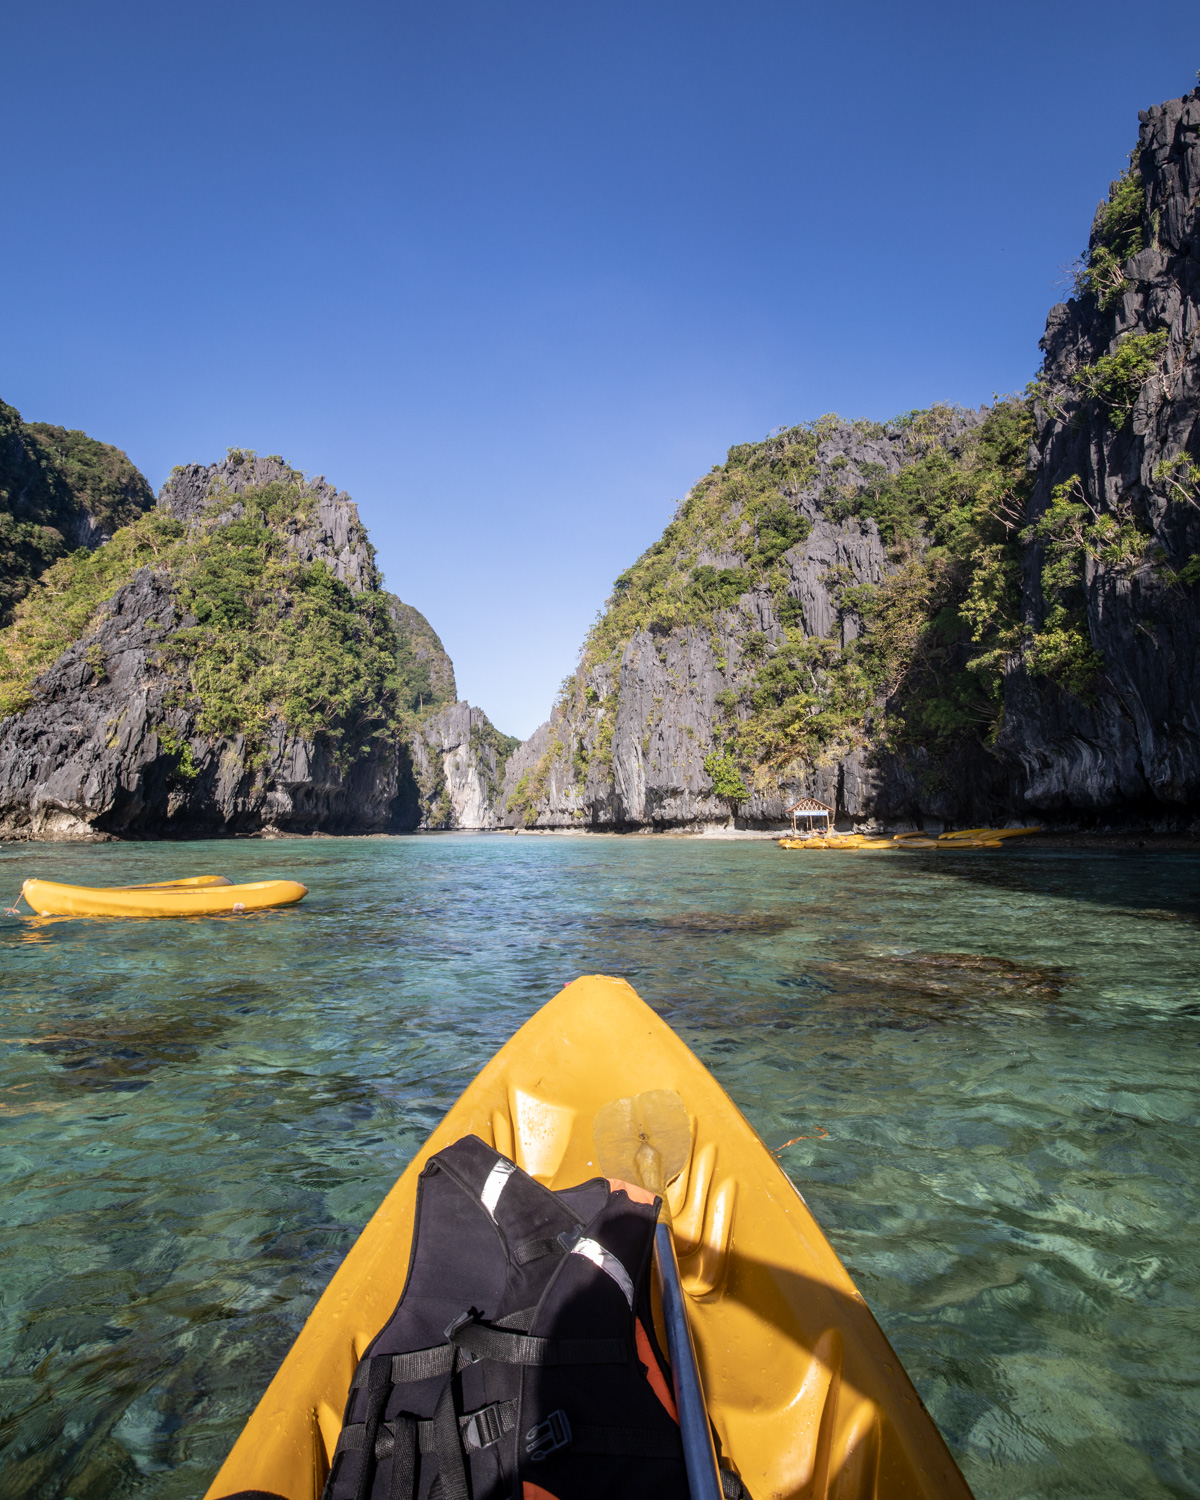 The kayaks at low tide